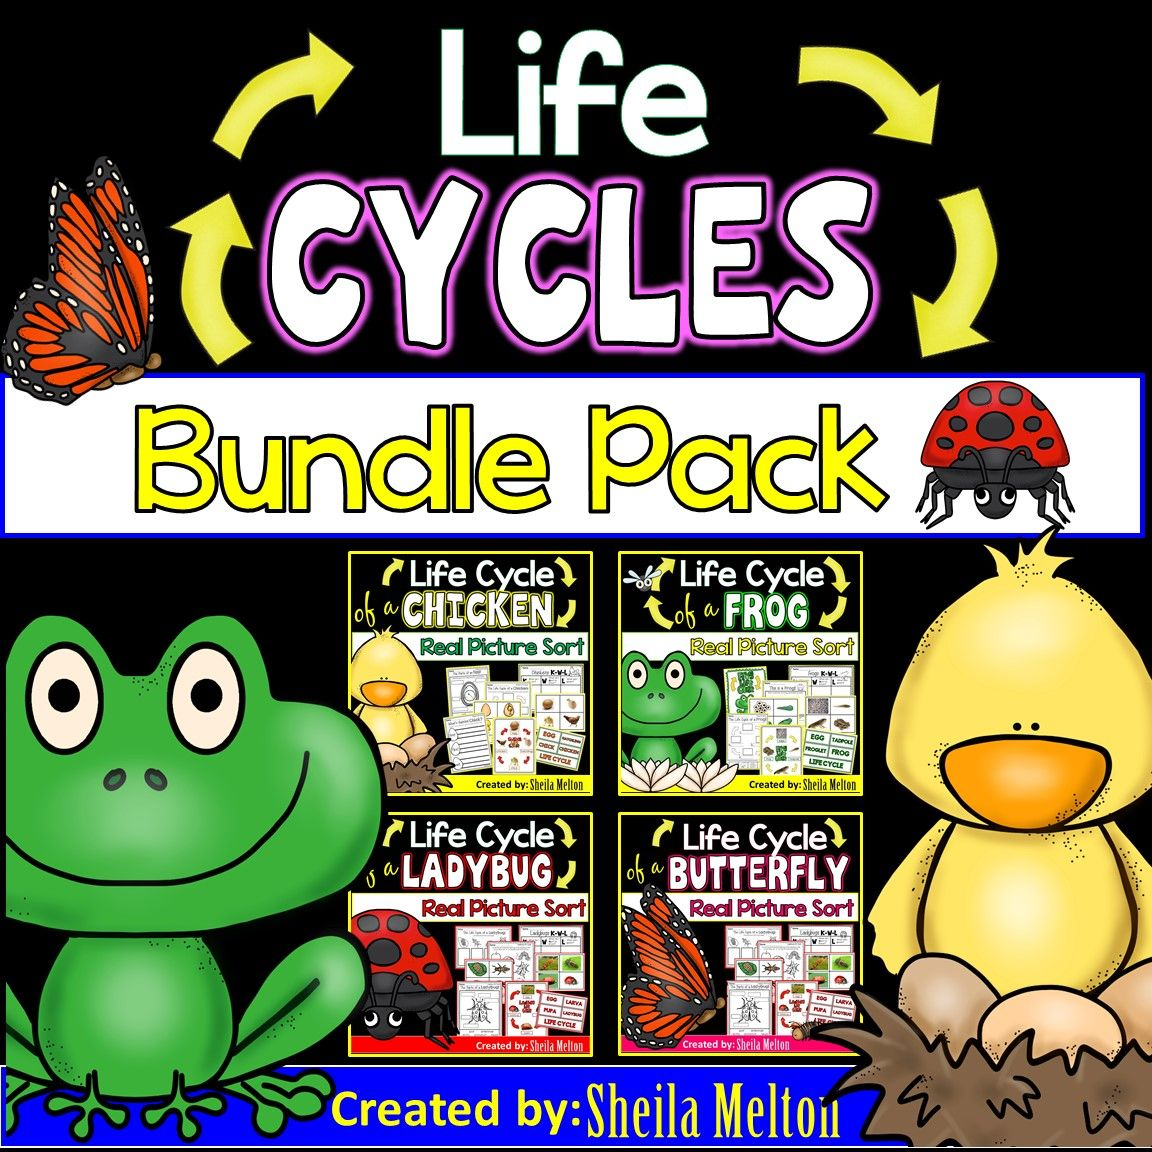 Life Cycles Bundle Pack Butterfly Frog Chicken Ladybug